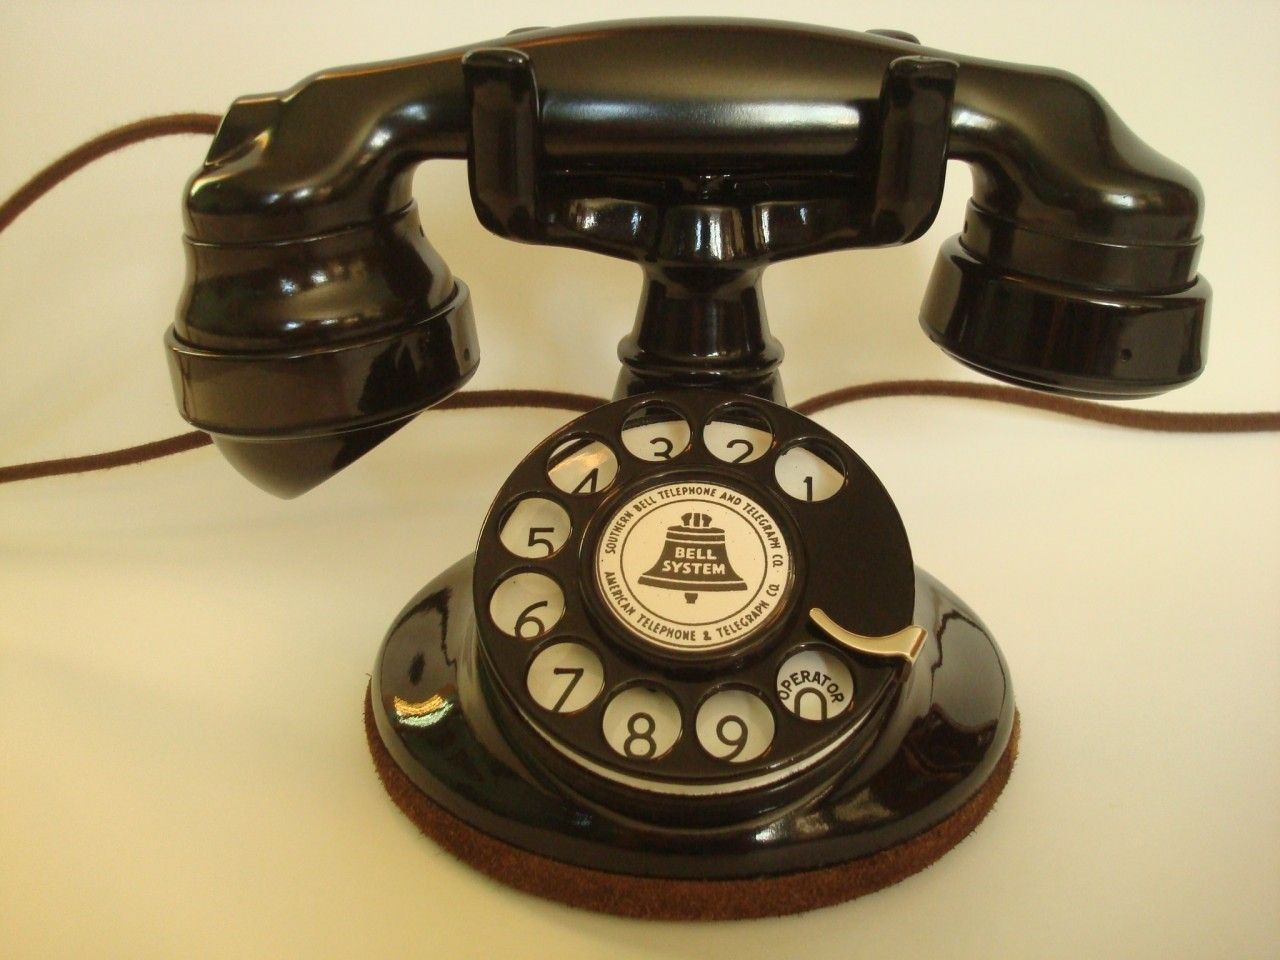 medium resolution of vintage telephones western electric 102 telephone antique telephone